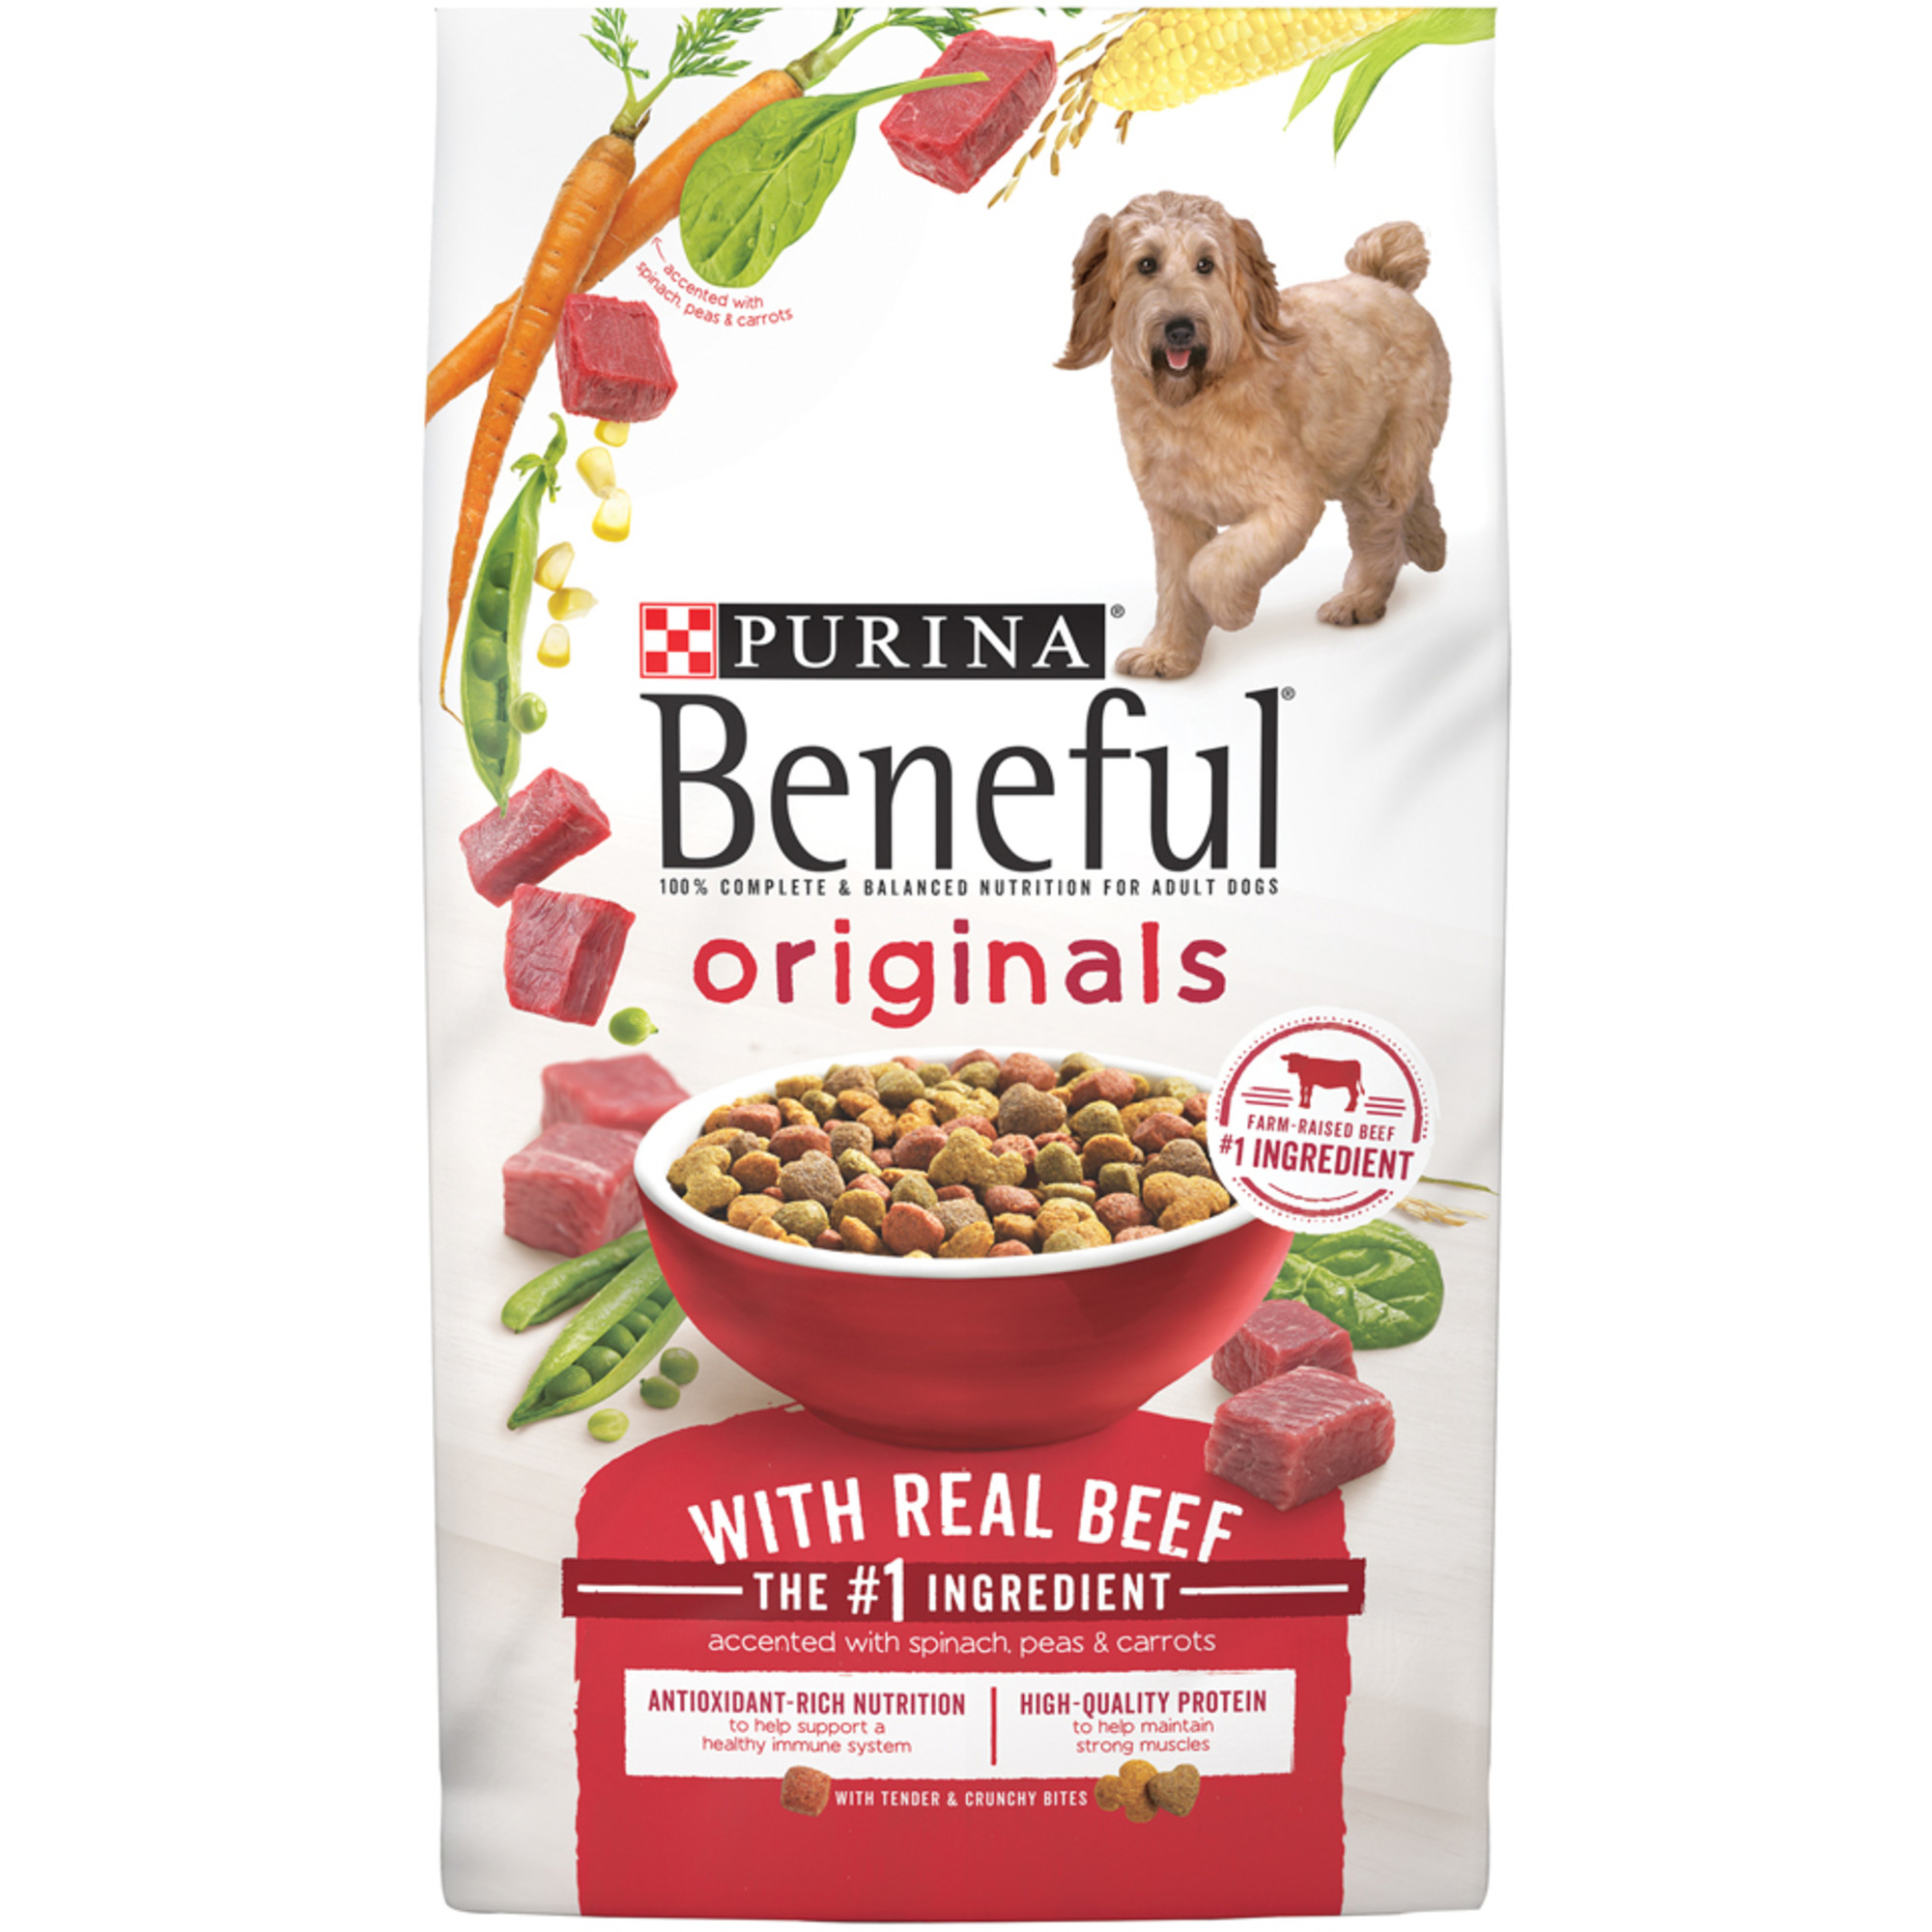 Purina Beneful Originals With Real Beef Dry Dog Food 31lb. Bag